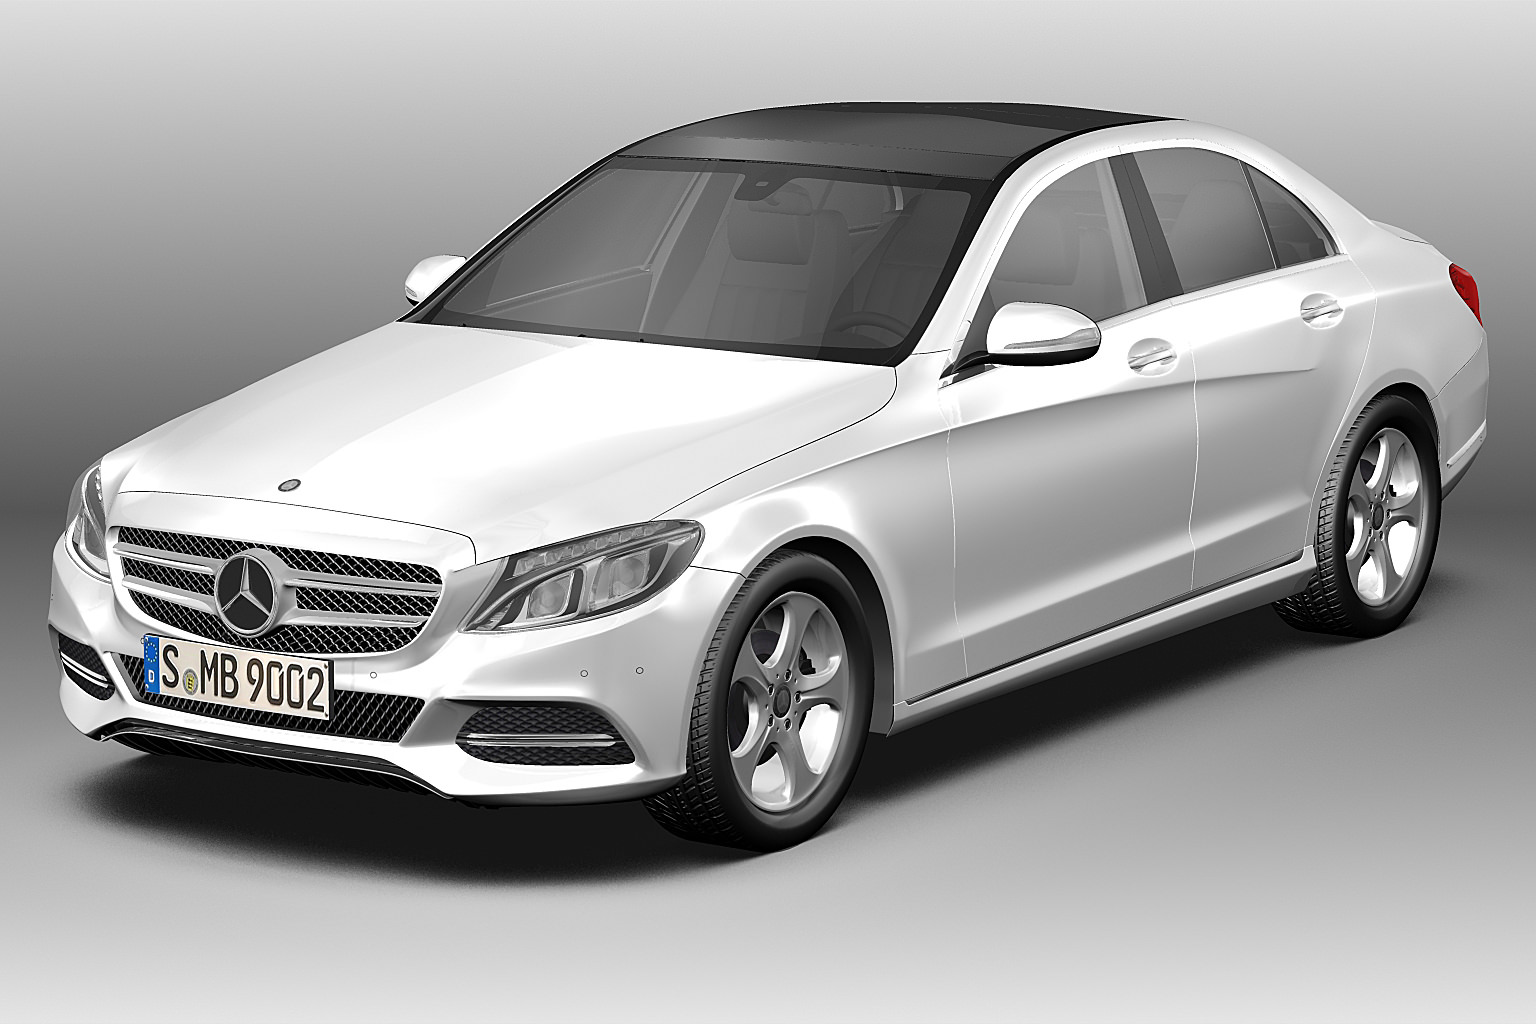 2014 mercedes benz c class 3d model max obj 3ds fbx c4d